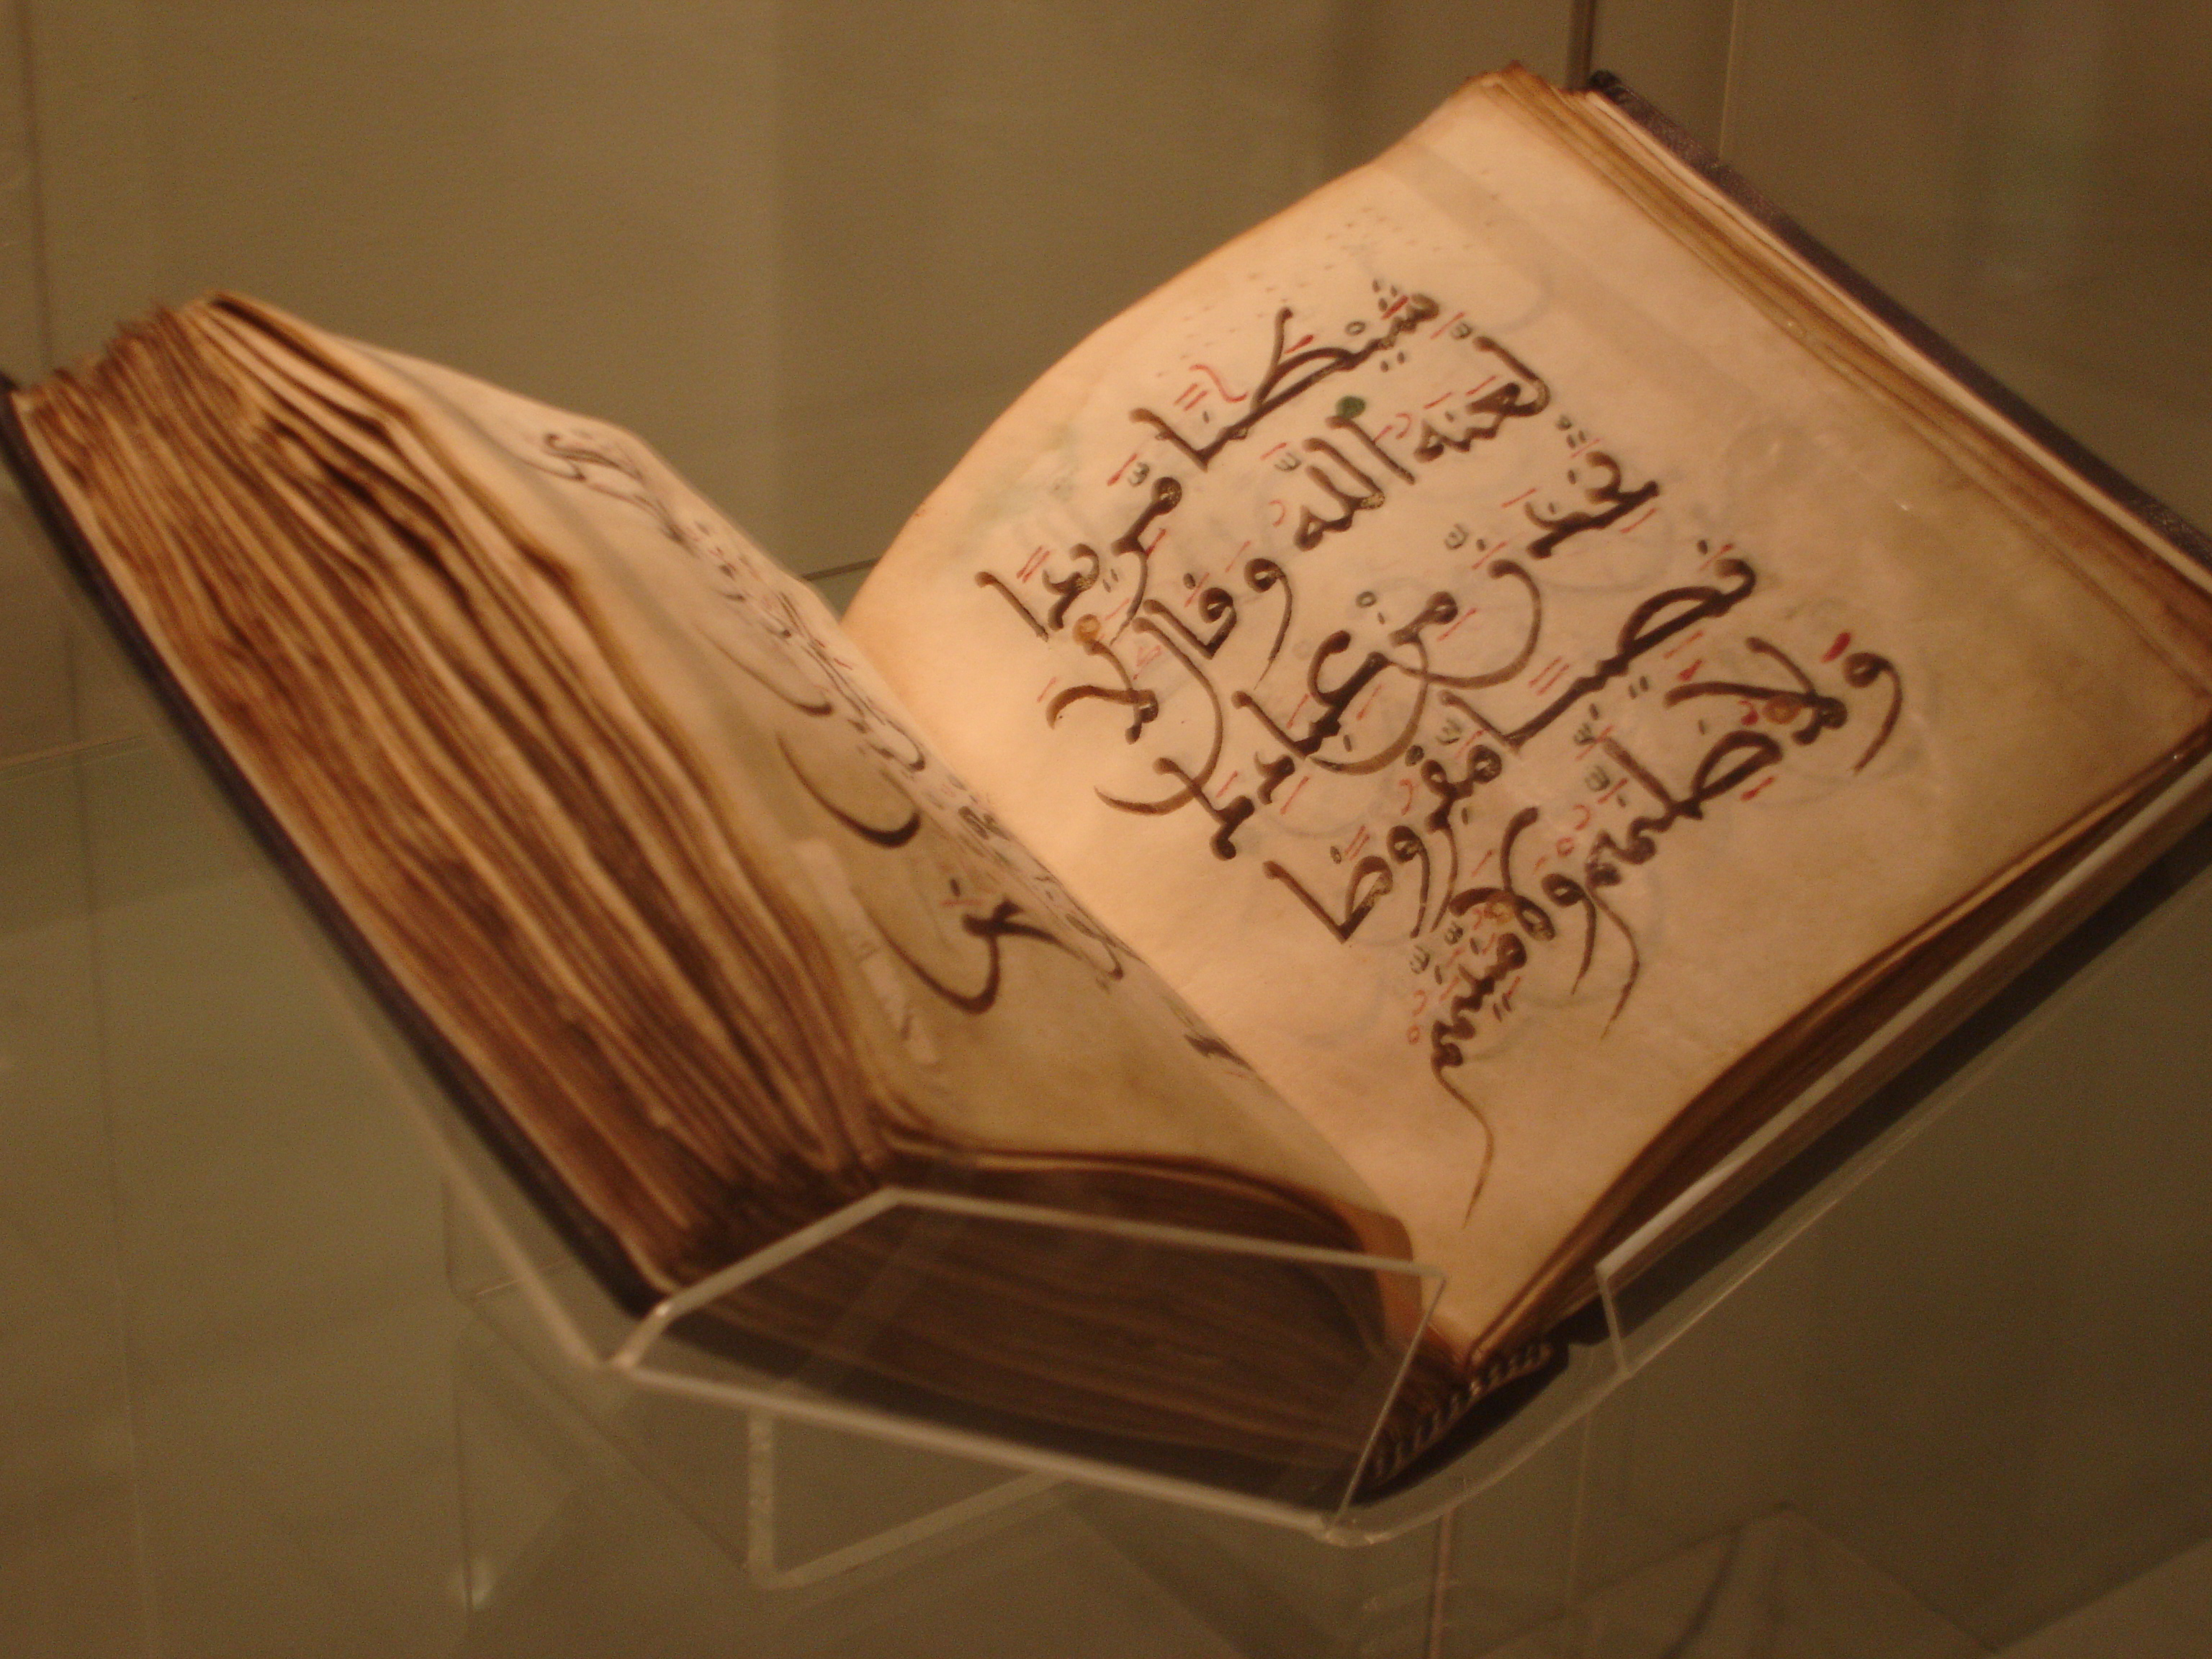 http://religioncompass.files.wordpress.com/2008/05/11th-century-north-african-qur_an-in-the-british-museum.jpg